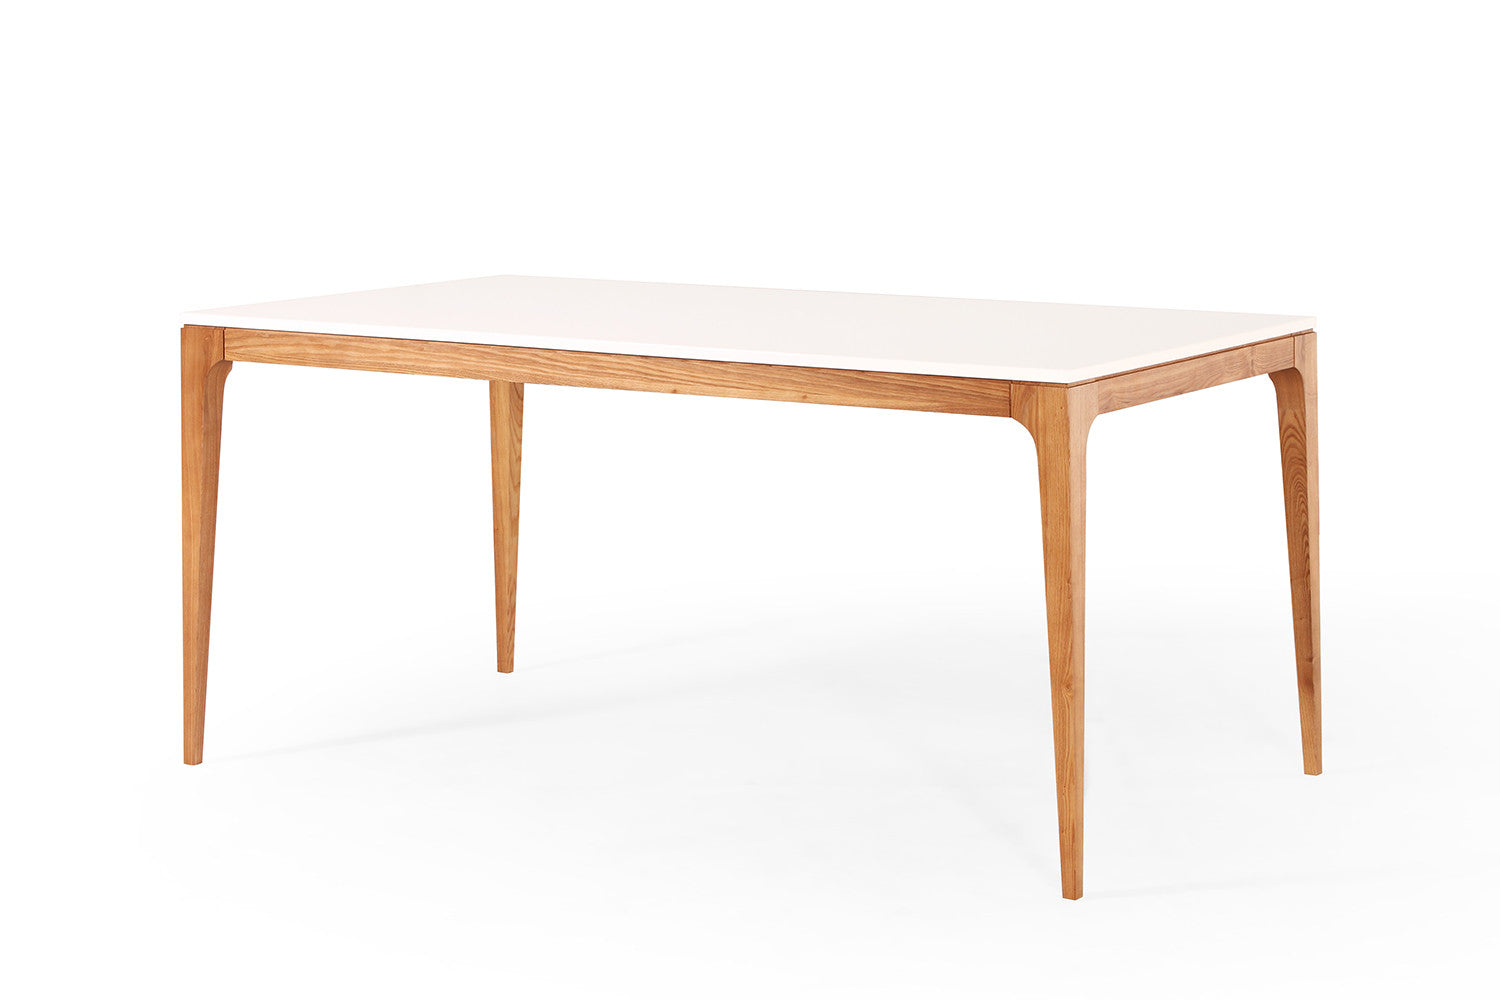 Table de repas design scandinave blanche et bois maggia for Table a rallonge design scandinave